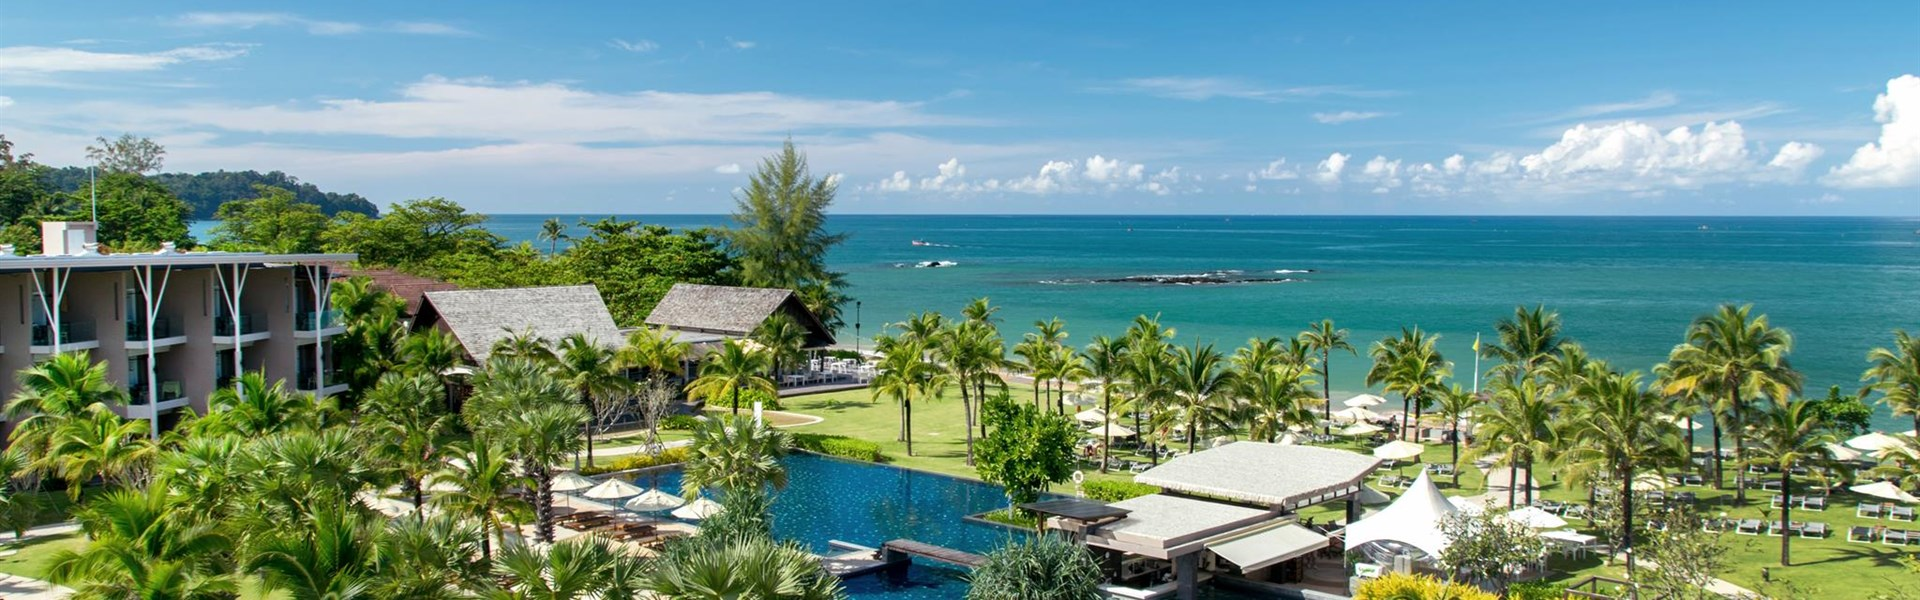 The Sand hotel Khao Lak -